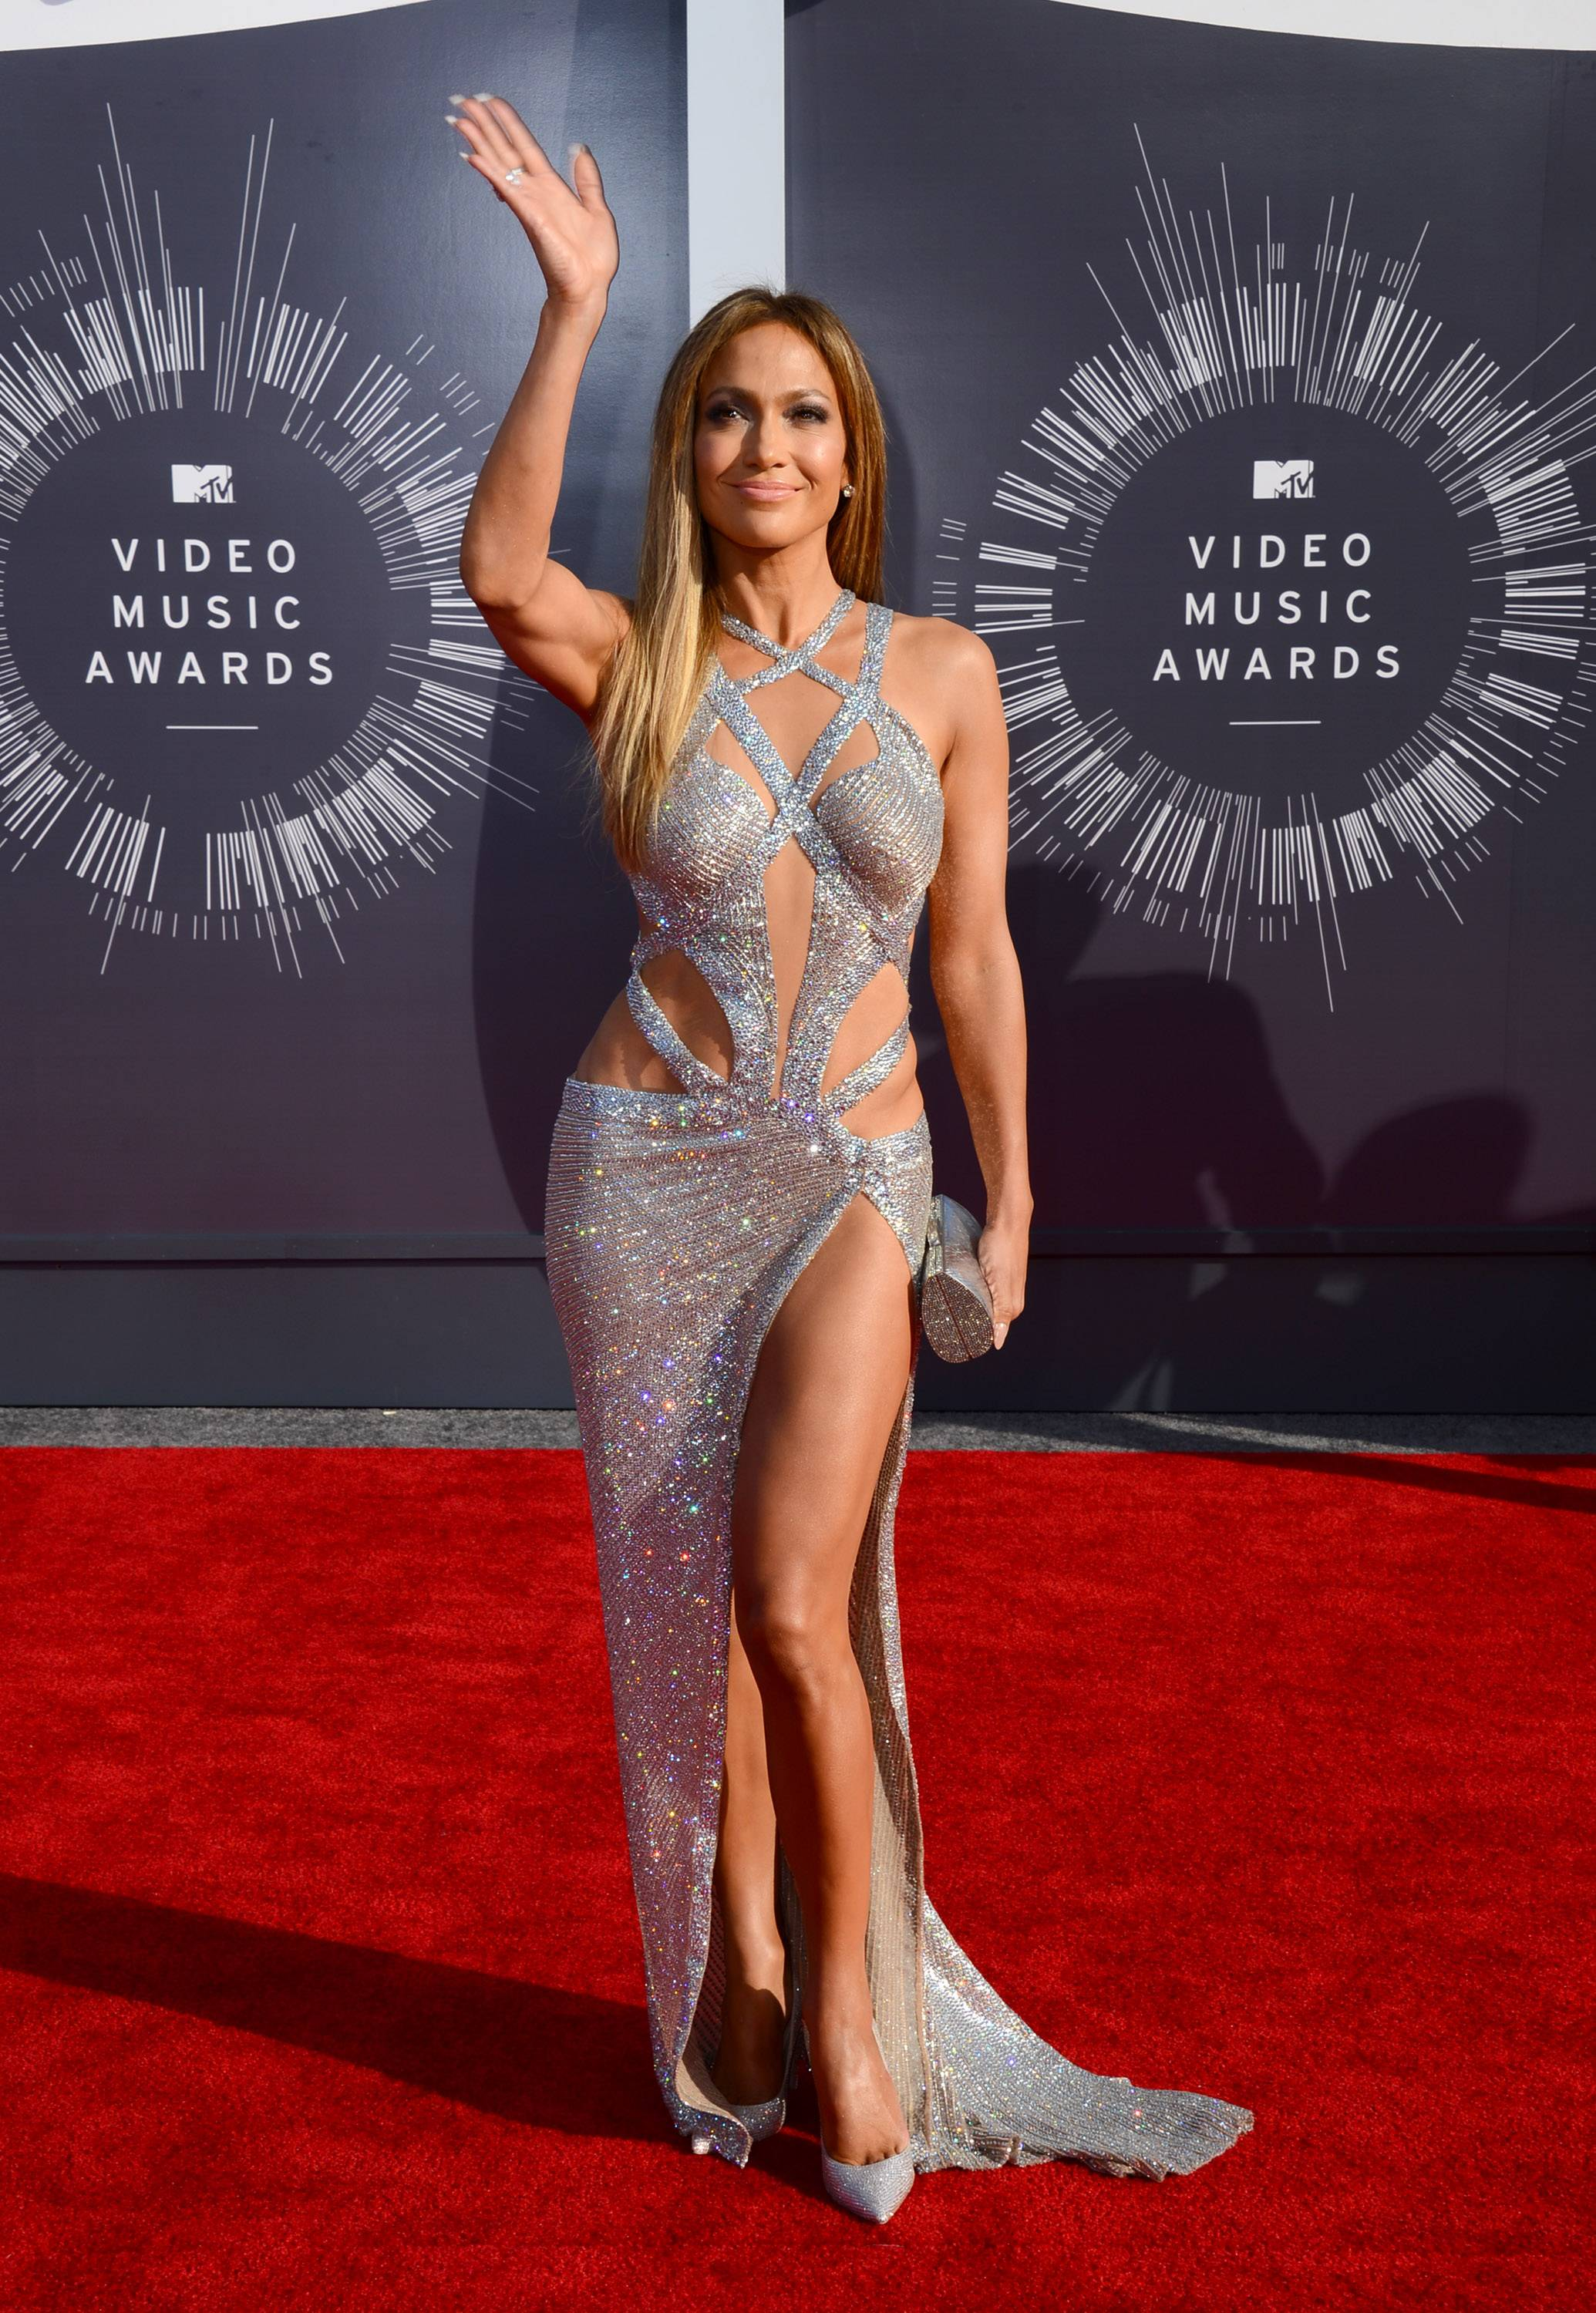 Jennifer Lopez arrives at the MTV Video Music Awards on Sunday.